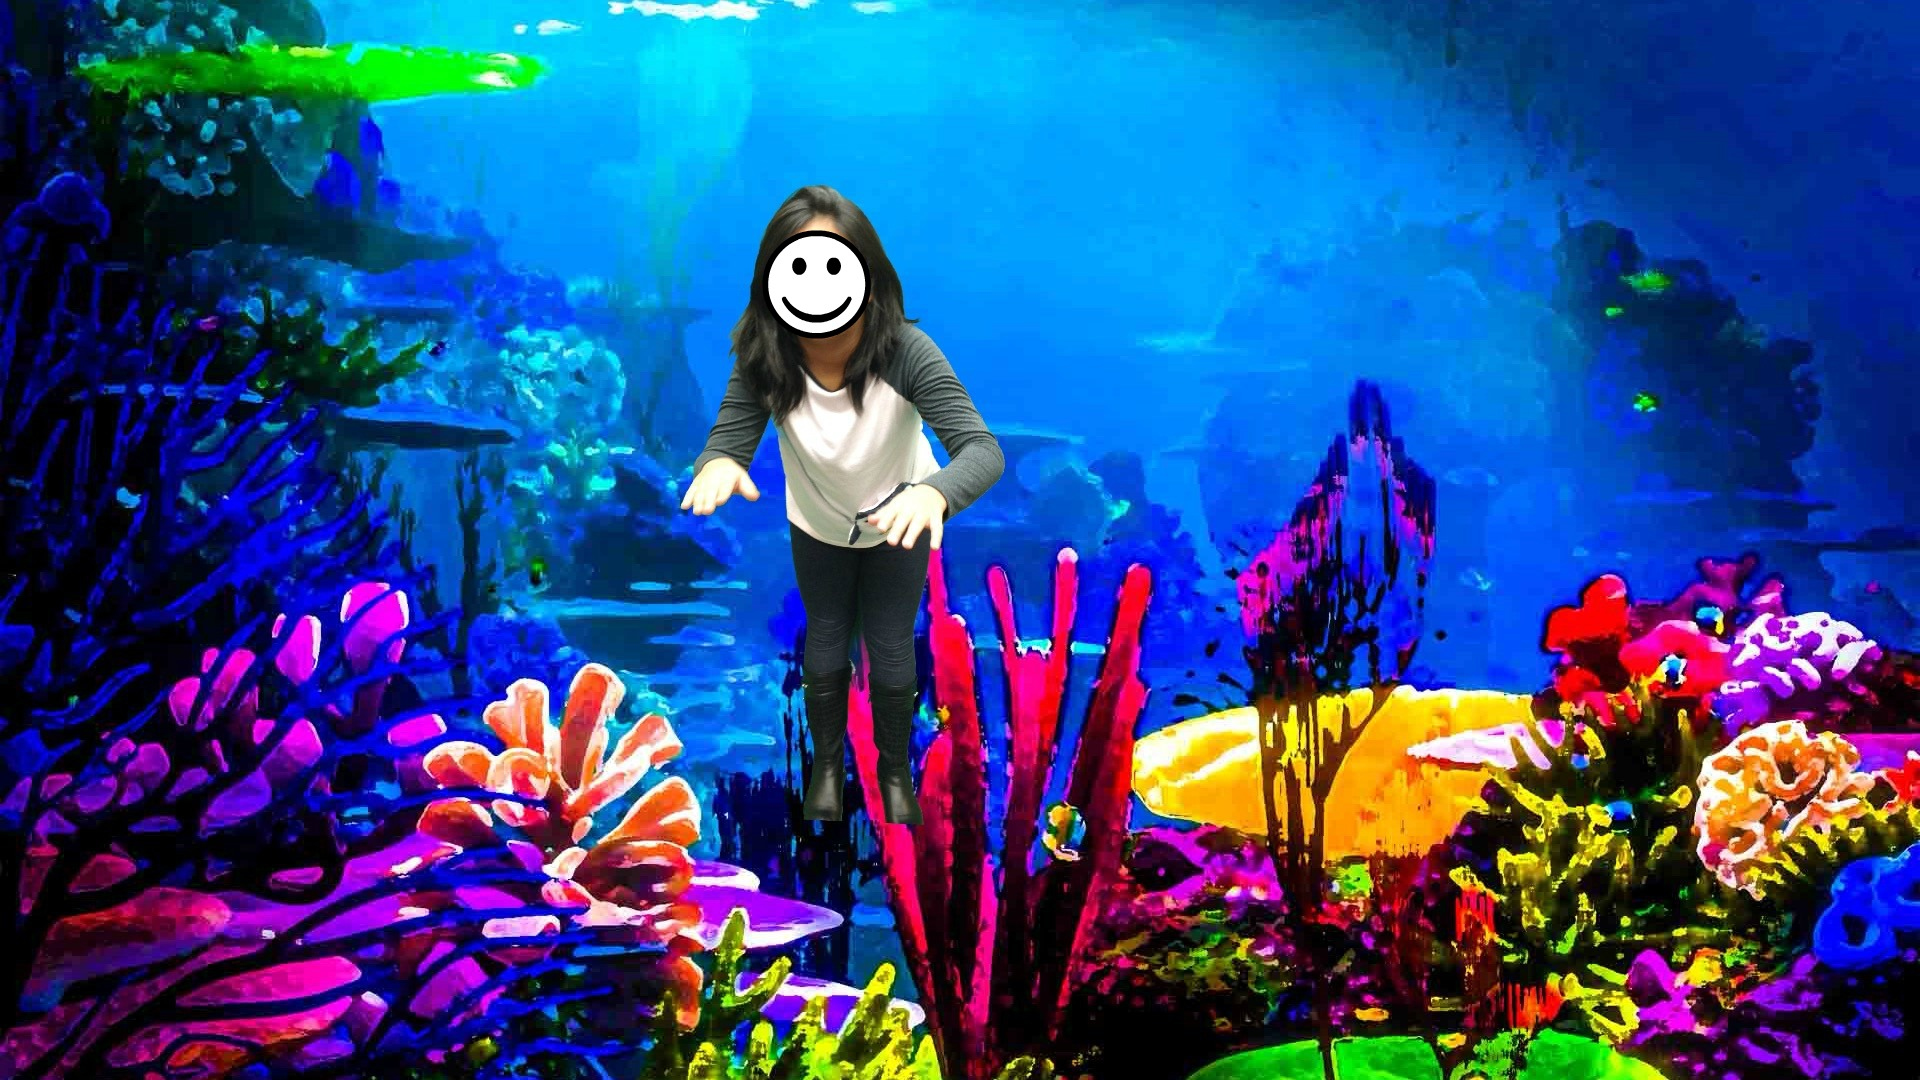 Child placed underwater using green screen app. Face covered for privacy.